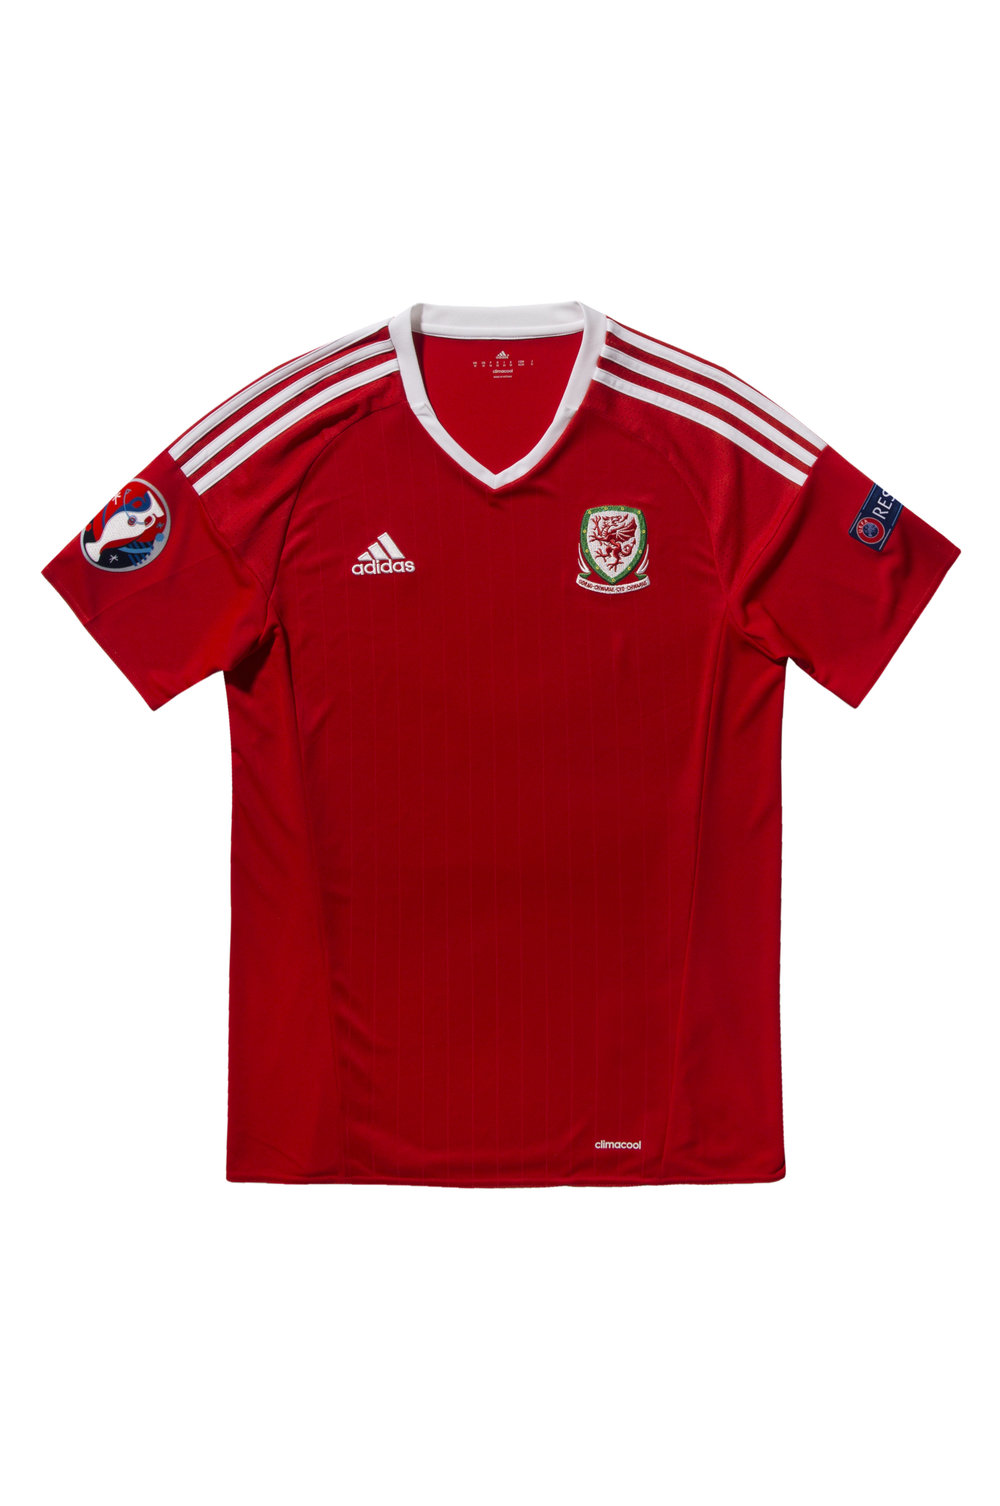 www.jdsports.co.uk adidas FA Wales 2016 Home Shirt, Exclusively Stocked at JD, £55.jpg